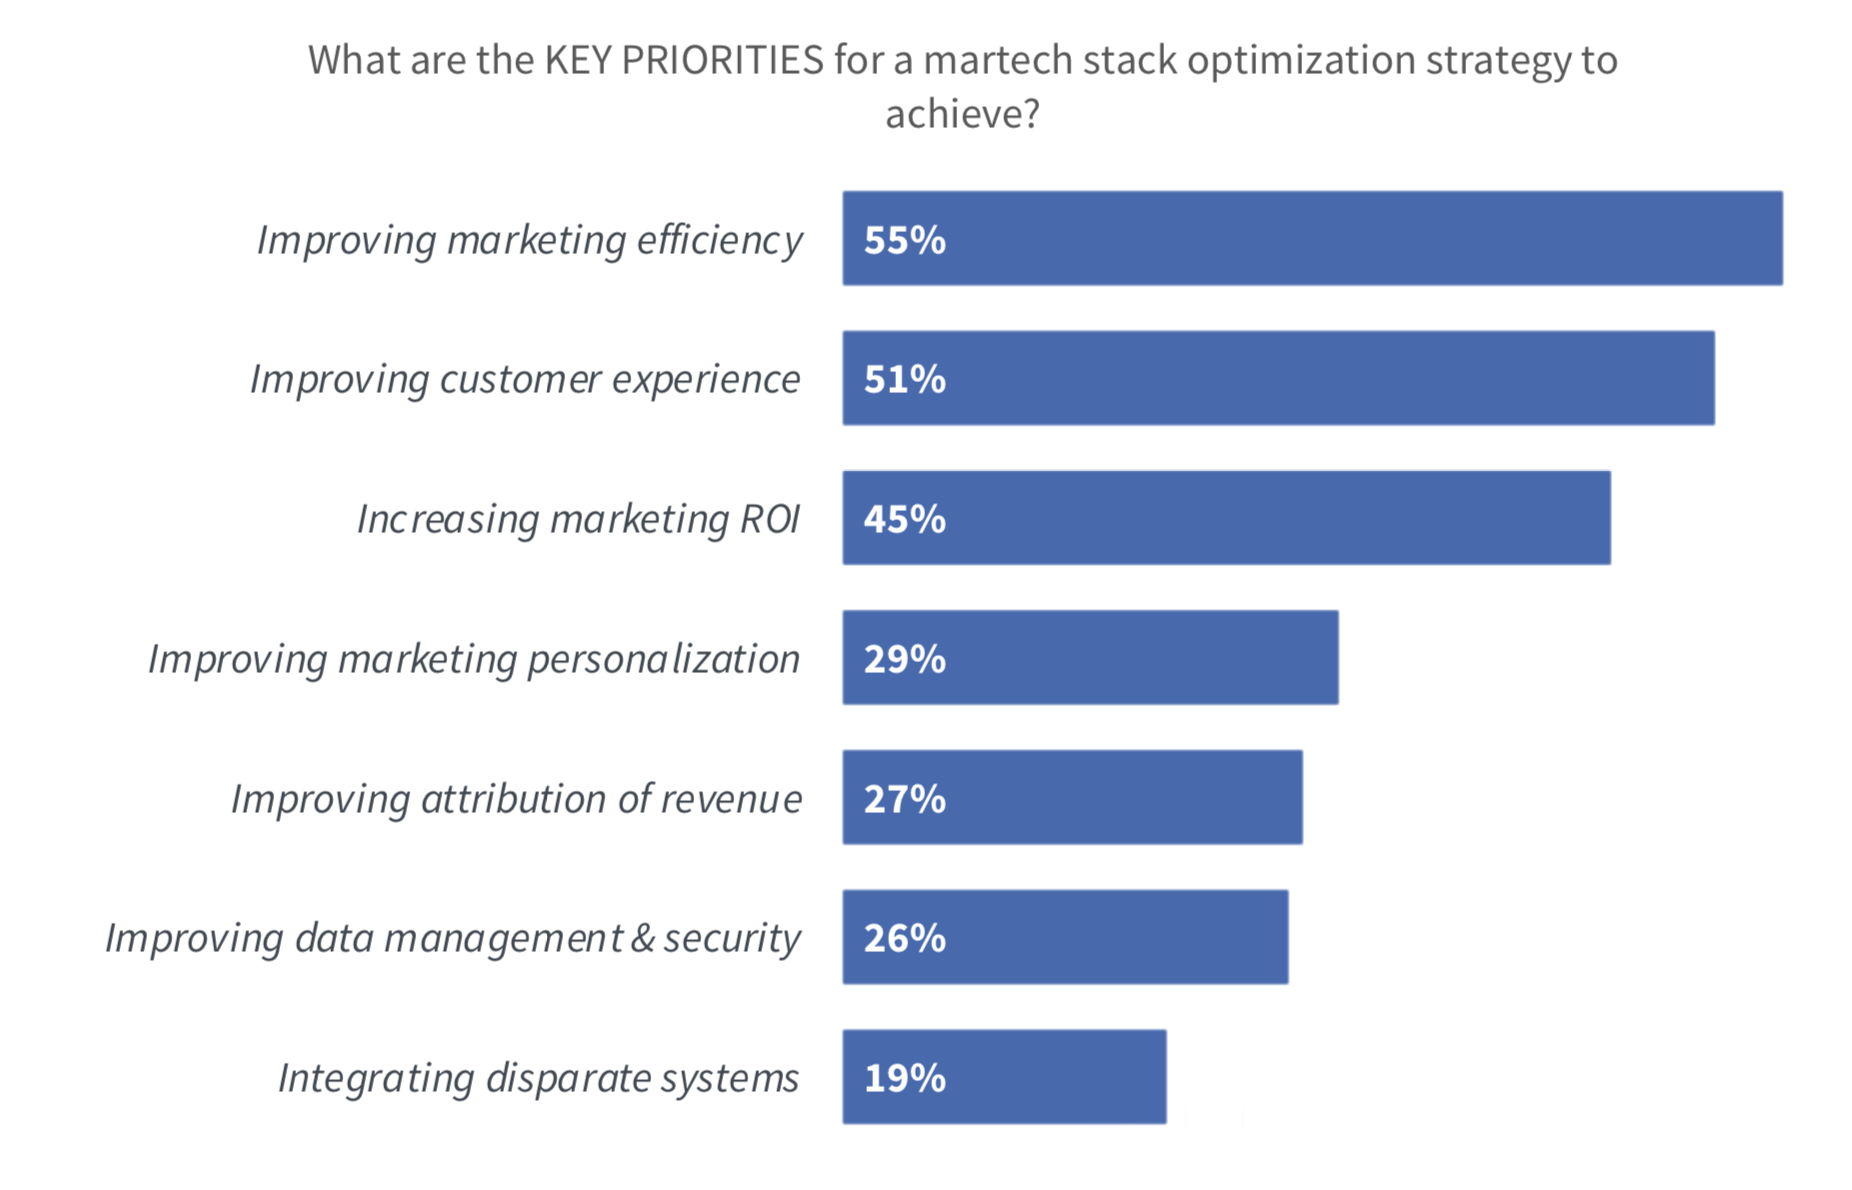 Key Priorities of a Martech Stack Optimization Strategy